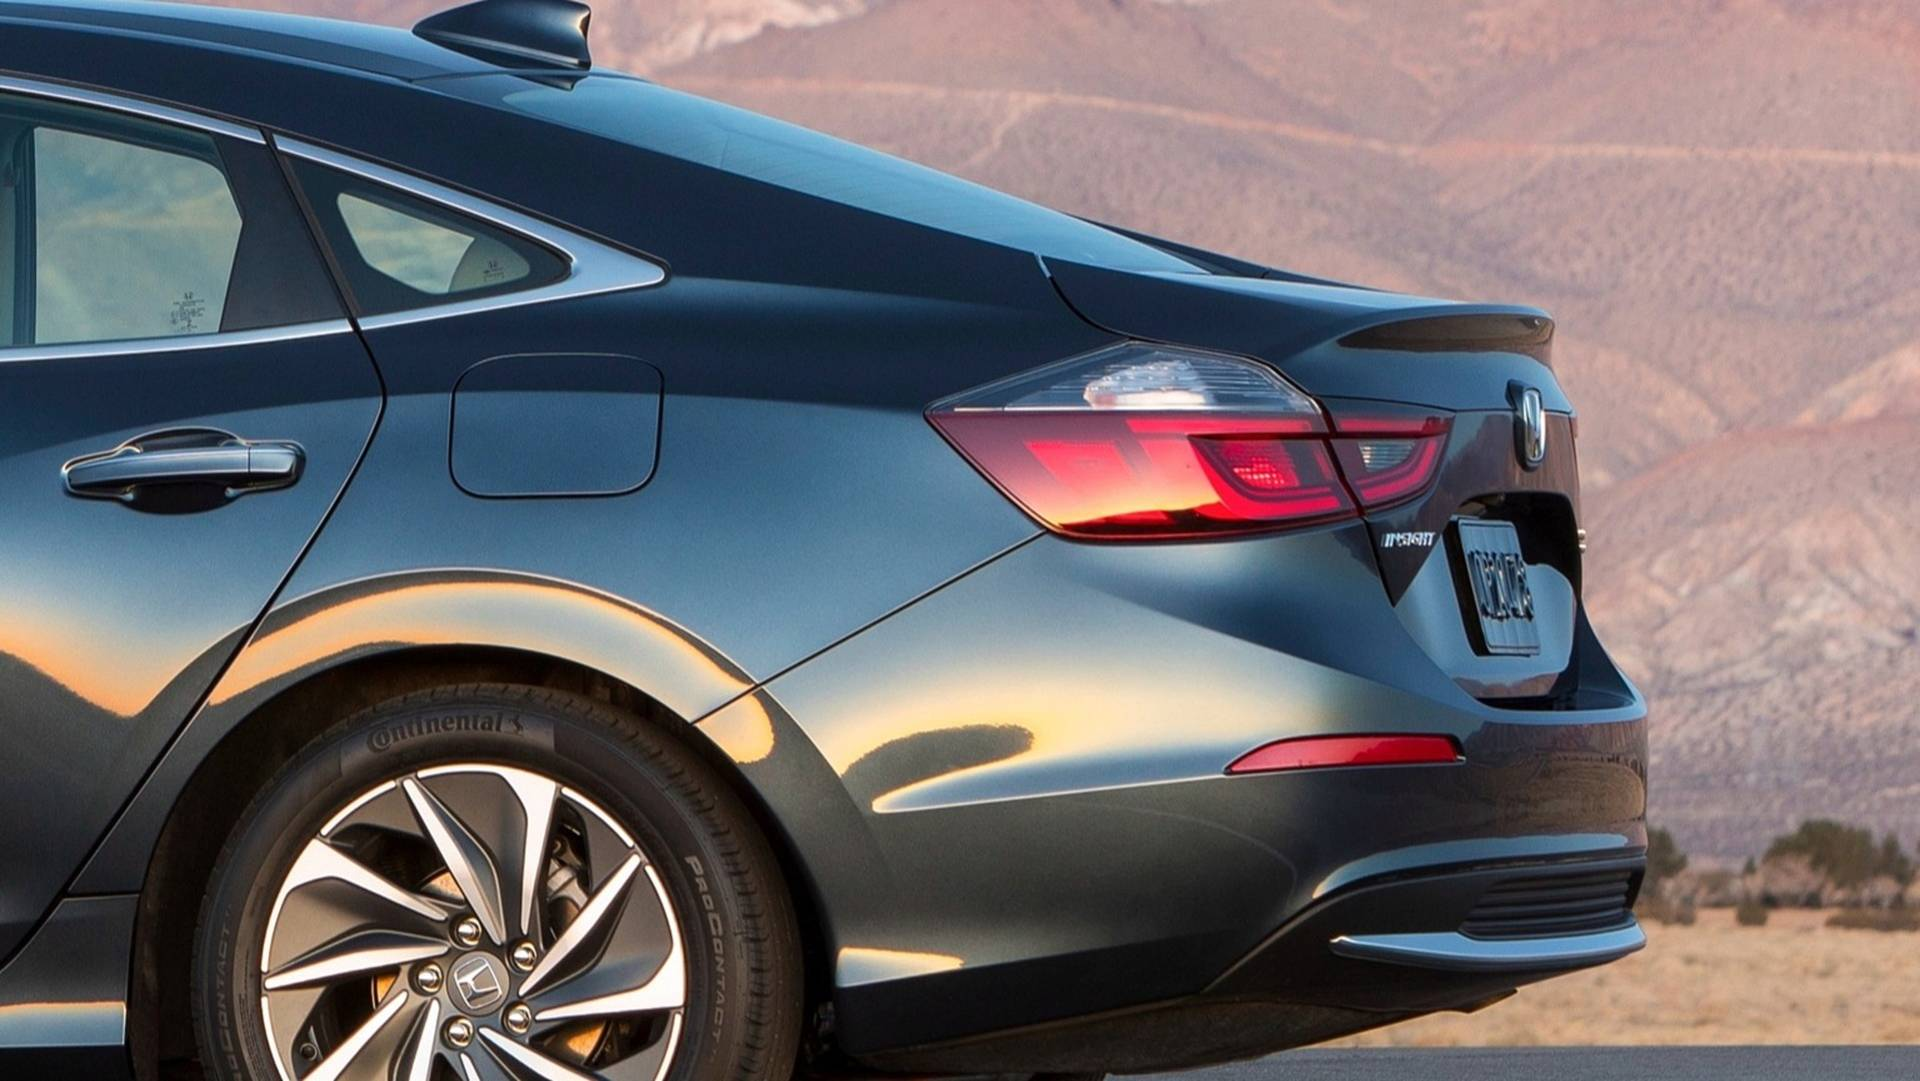 10 Easiest Ways To Boost Your Vehicle's Fuel Economy